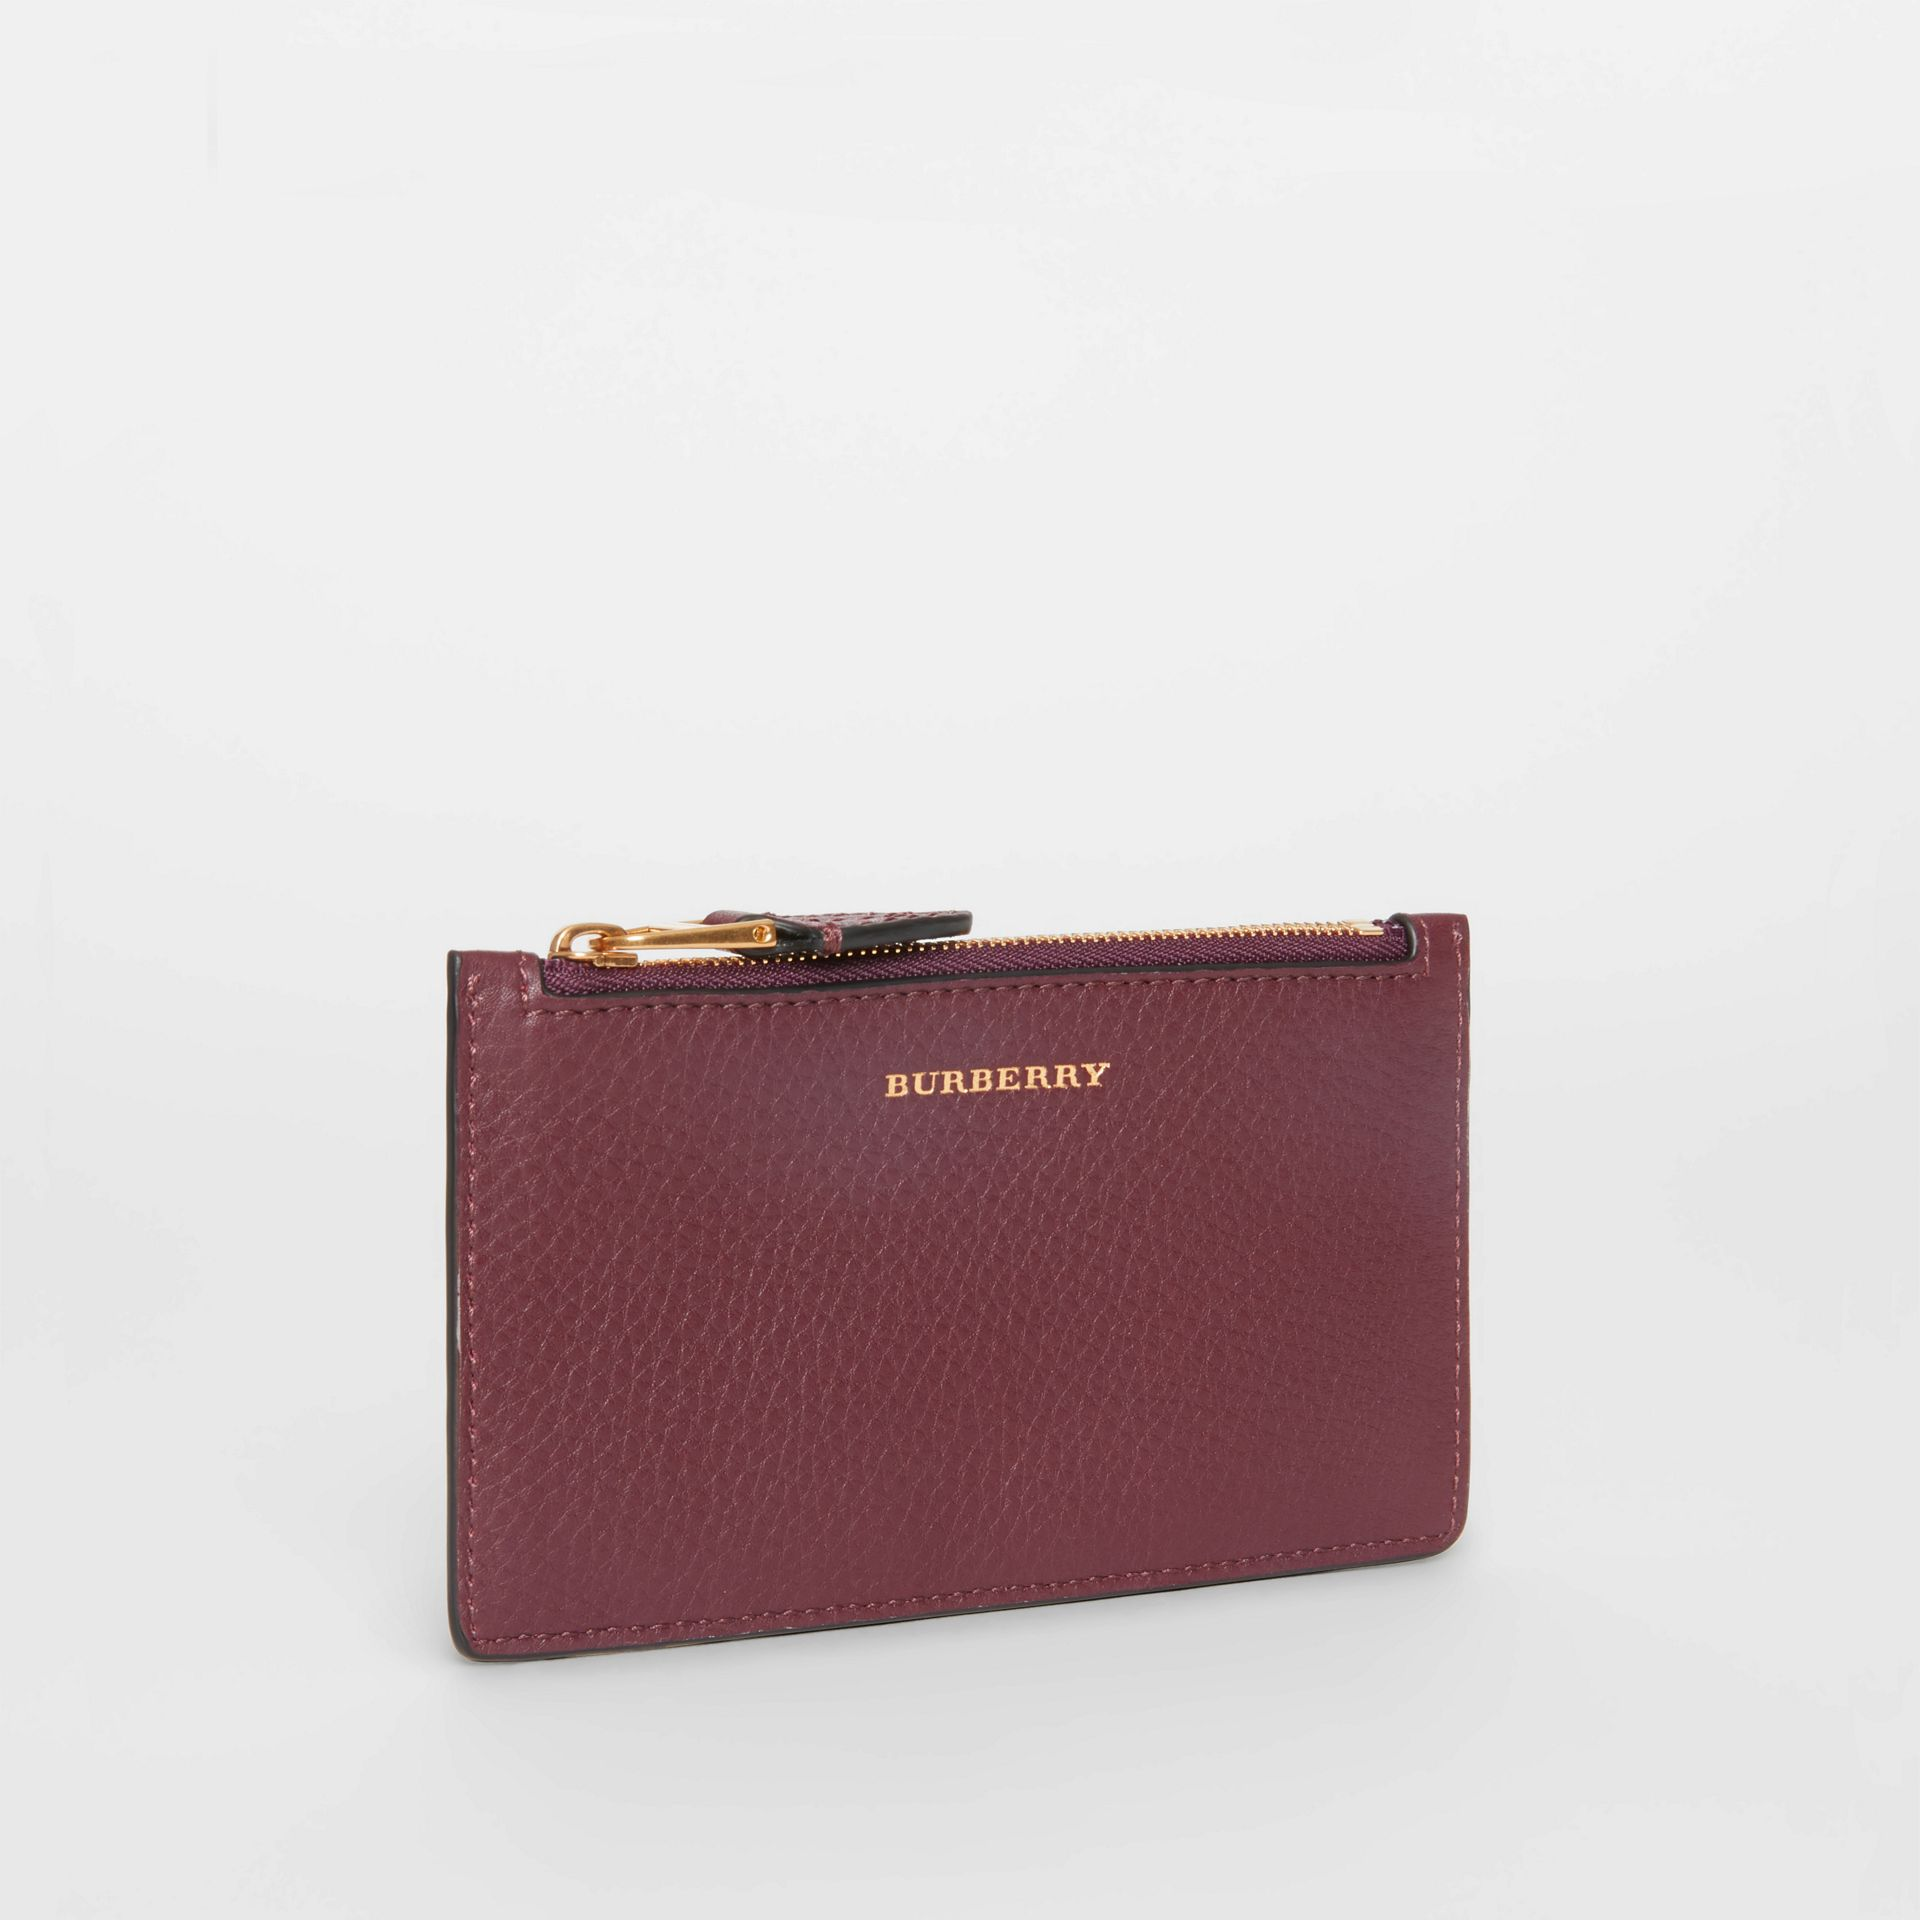 Porte-cartes zippé en cuir bicolore (Bordeaux Intense) | Burberry - photo de la galerie 3